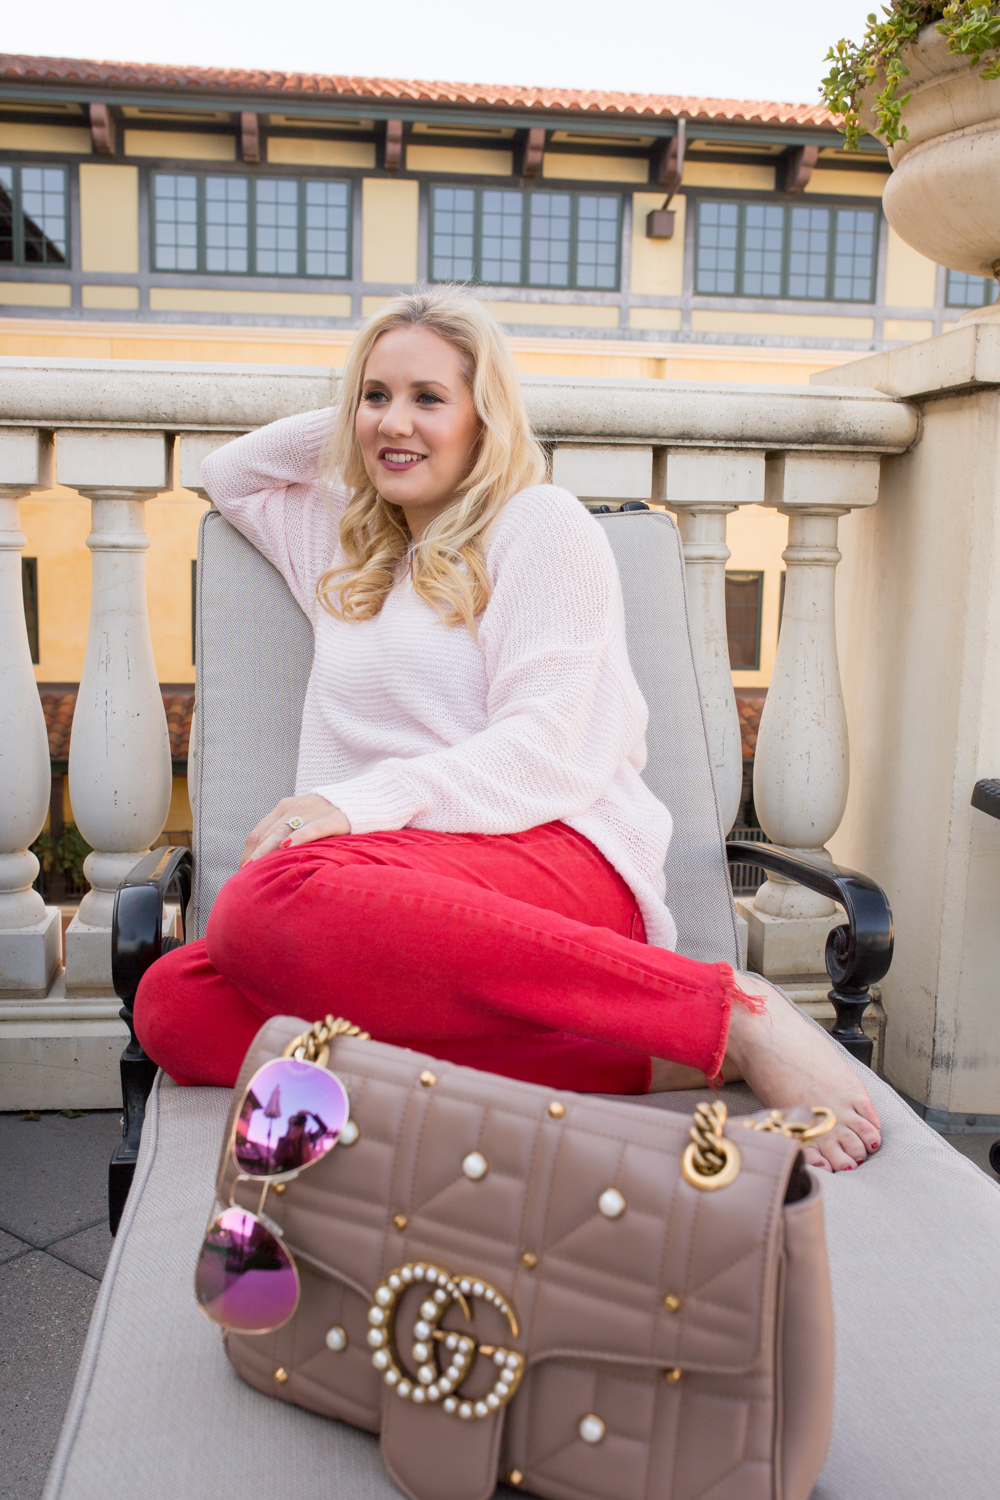 Casual Valentine's Day Outfit, The Perfect Mini V-Day Staycation, Valencia Hotel, Santana Row, Casual Outfit Inspiration, Have Need Want